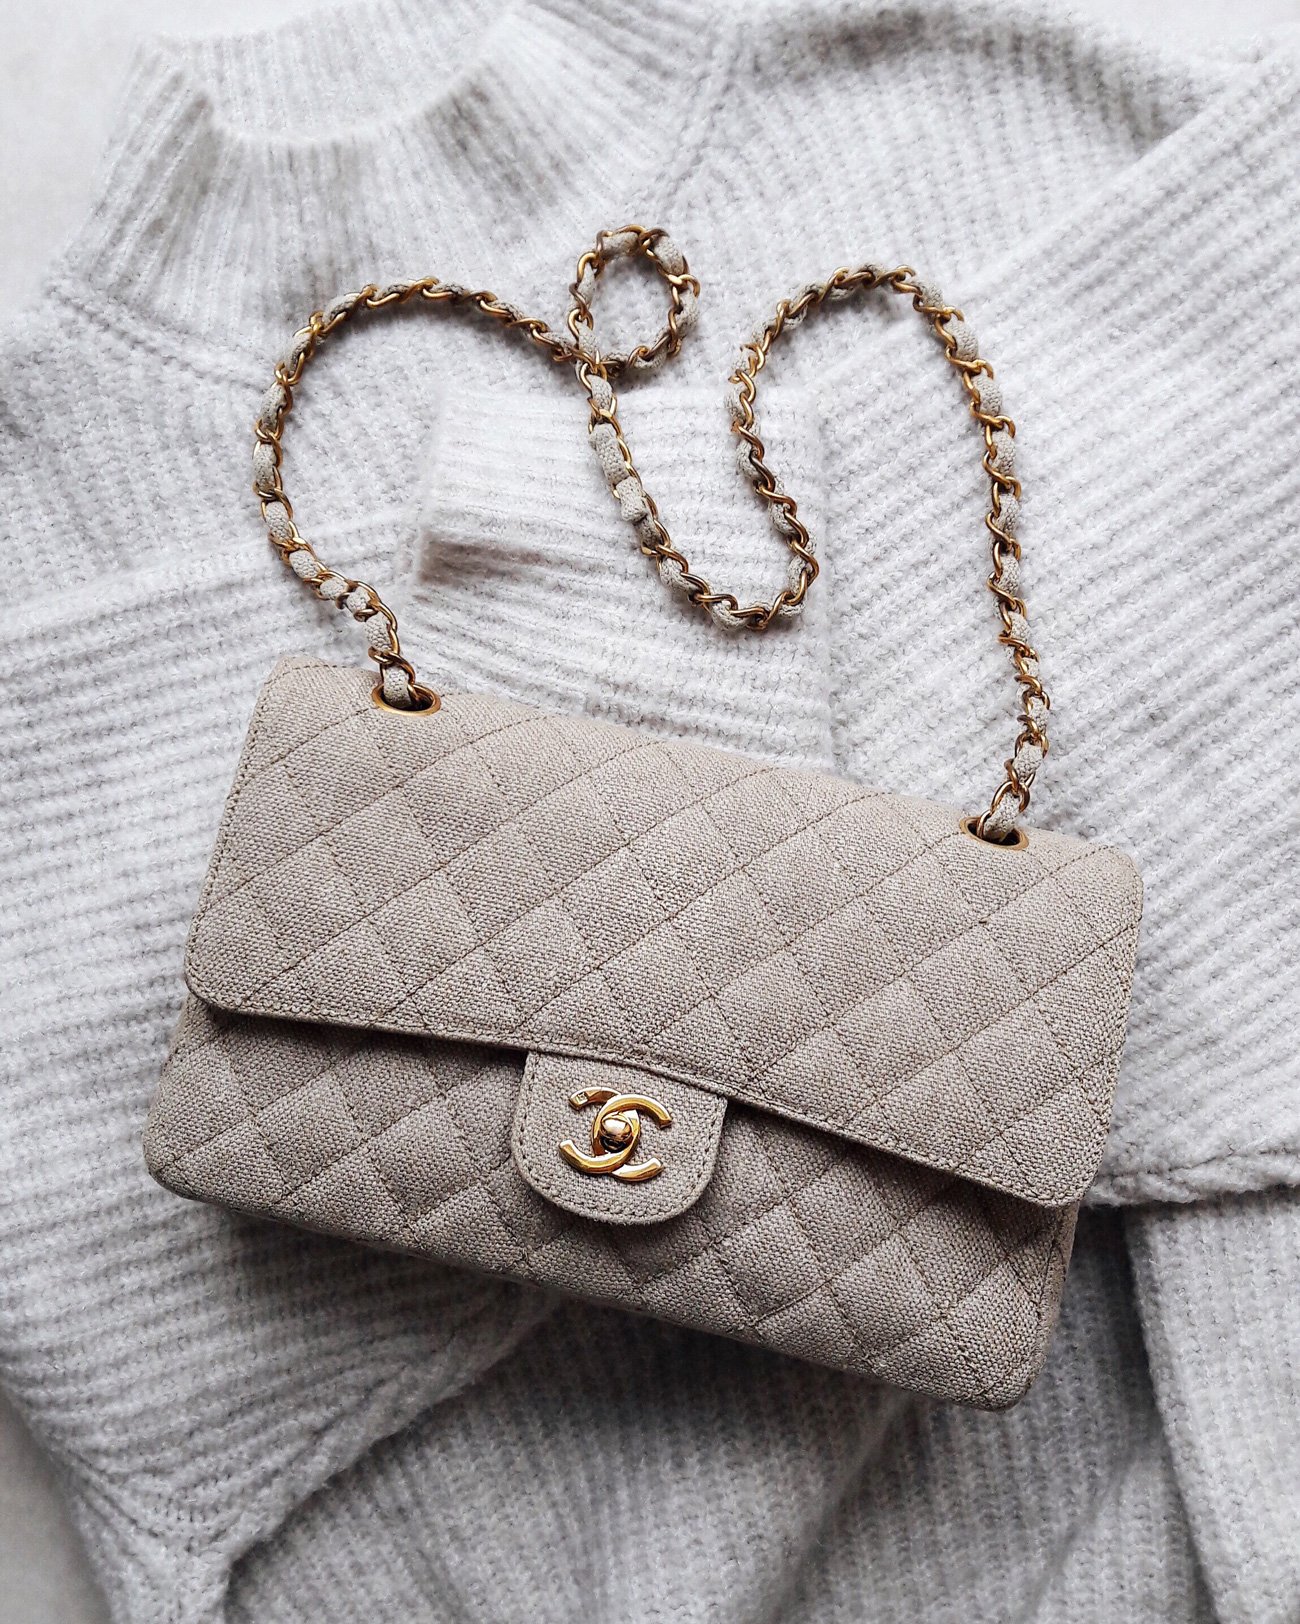 vintage-chanel-timeless-2.55-aus-stoff-canvas